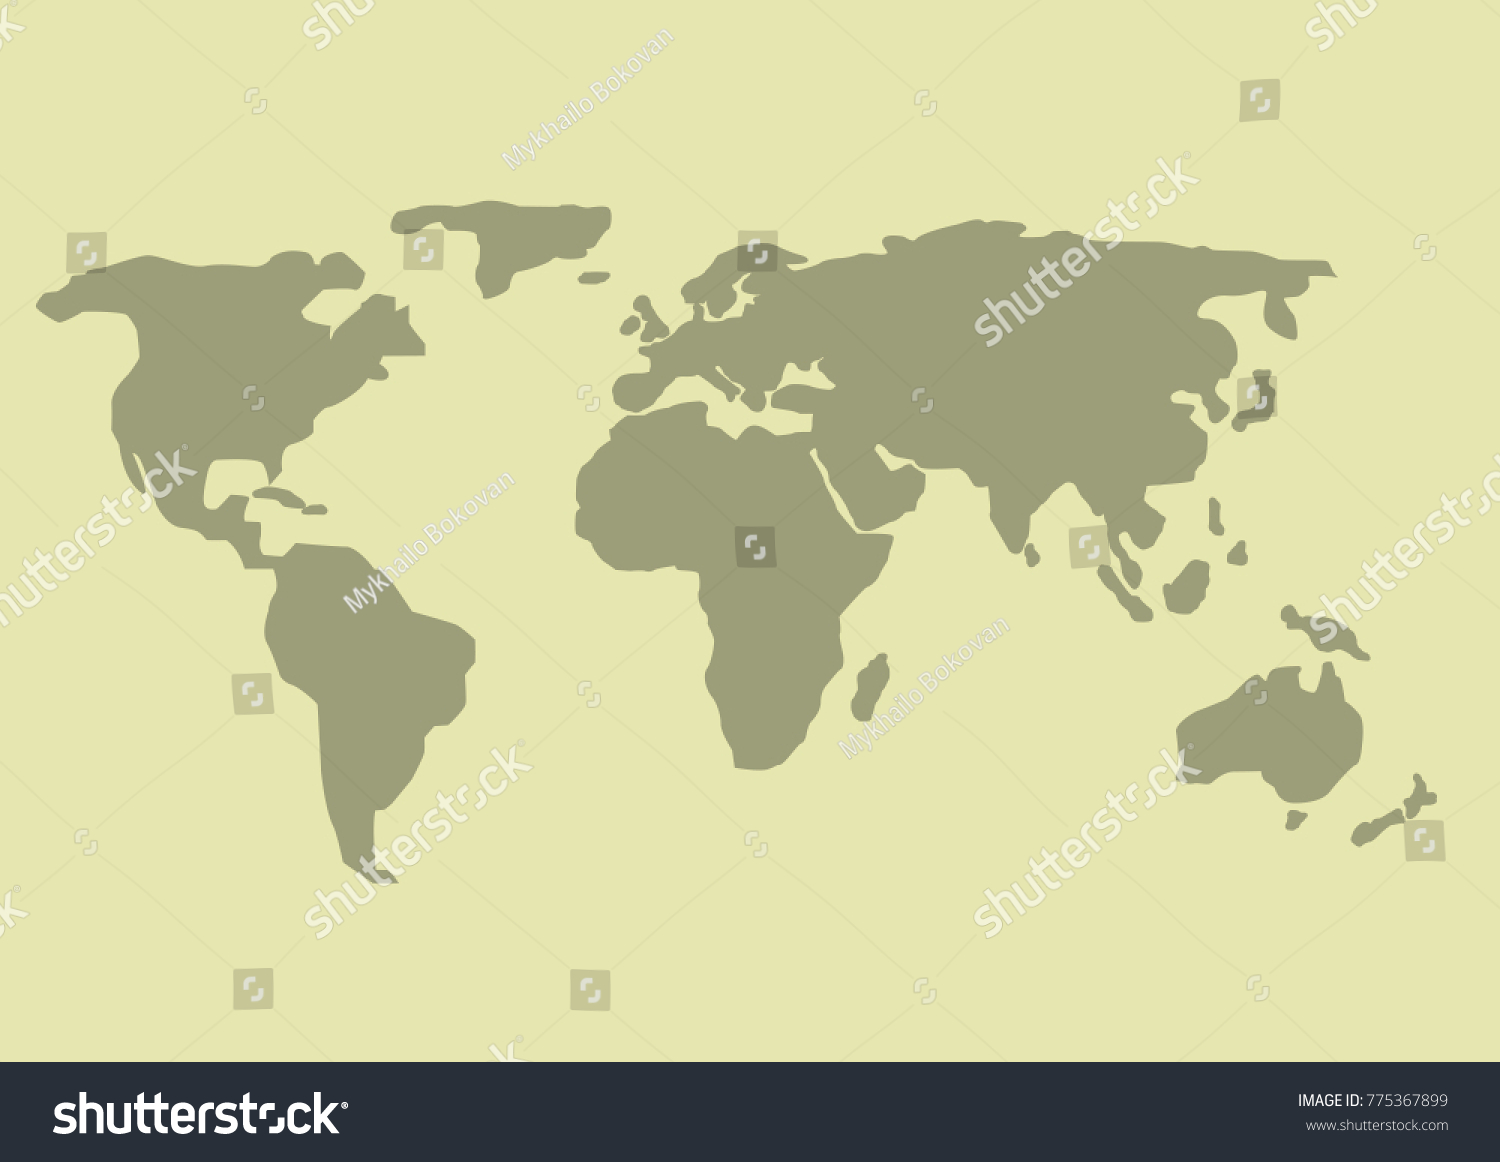 Simple world map earth design planet stock vector 775367899 simple world map earth design planet illustration gumiabroncs Images